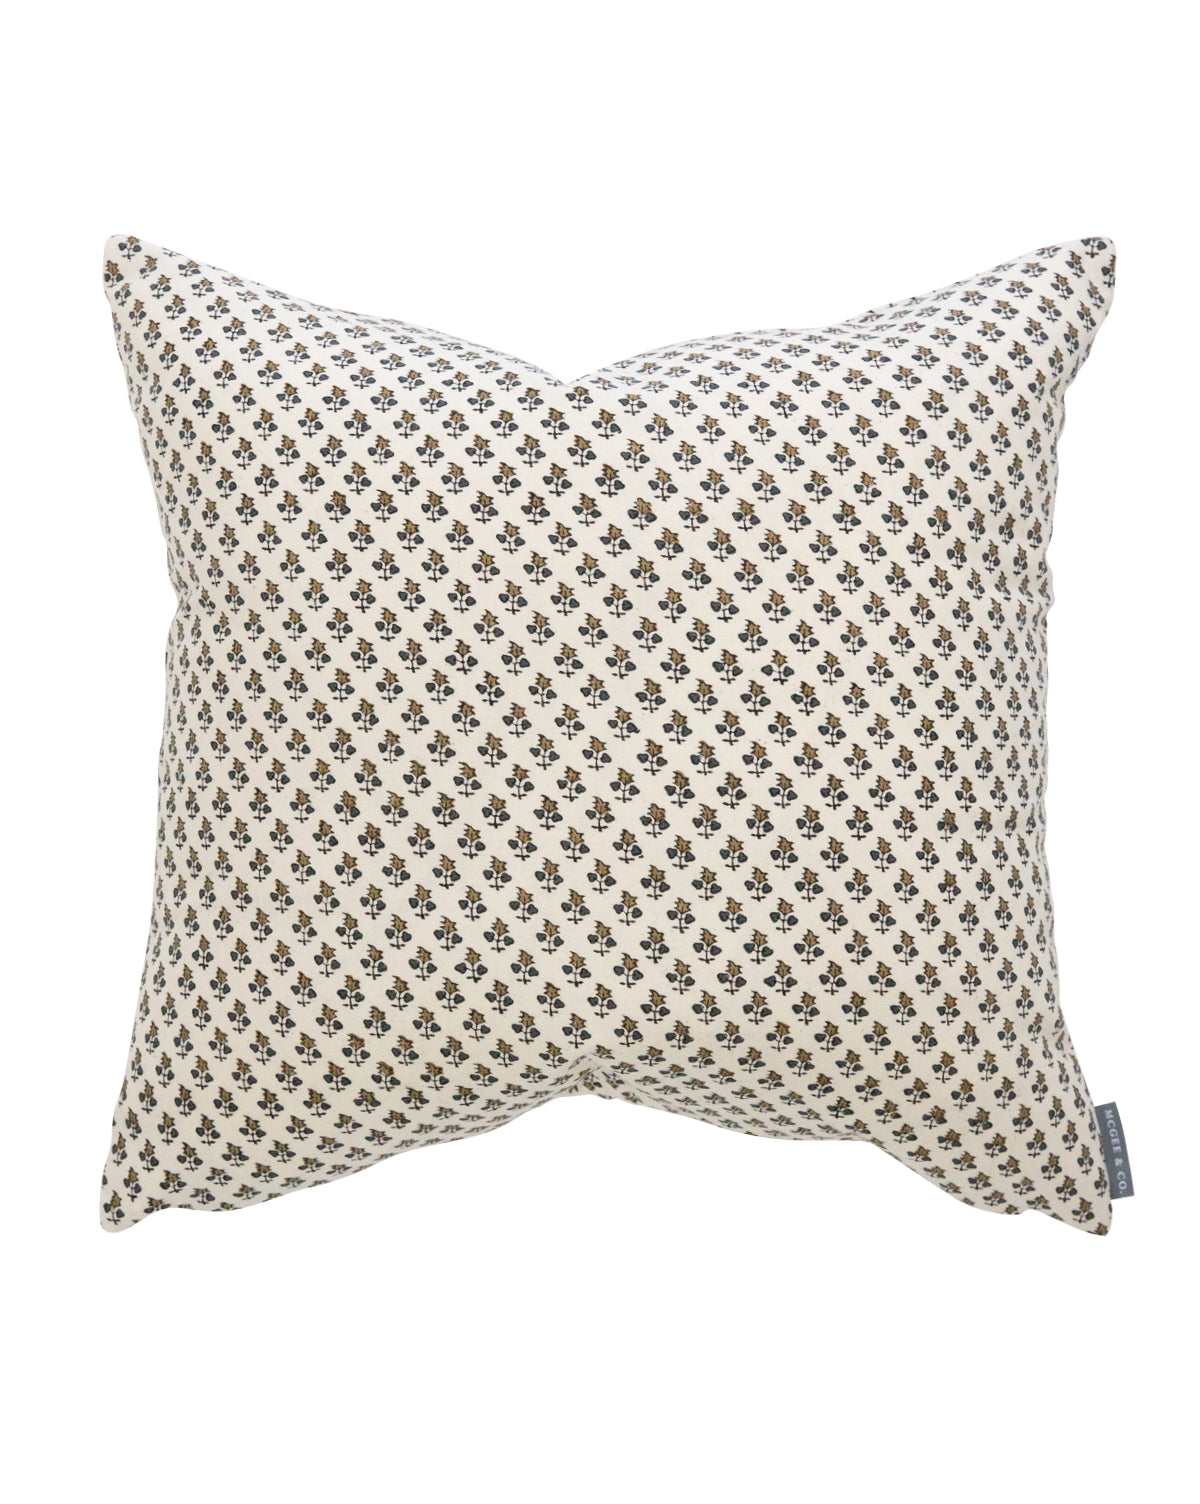 Deliah Pillow Cover